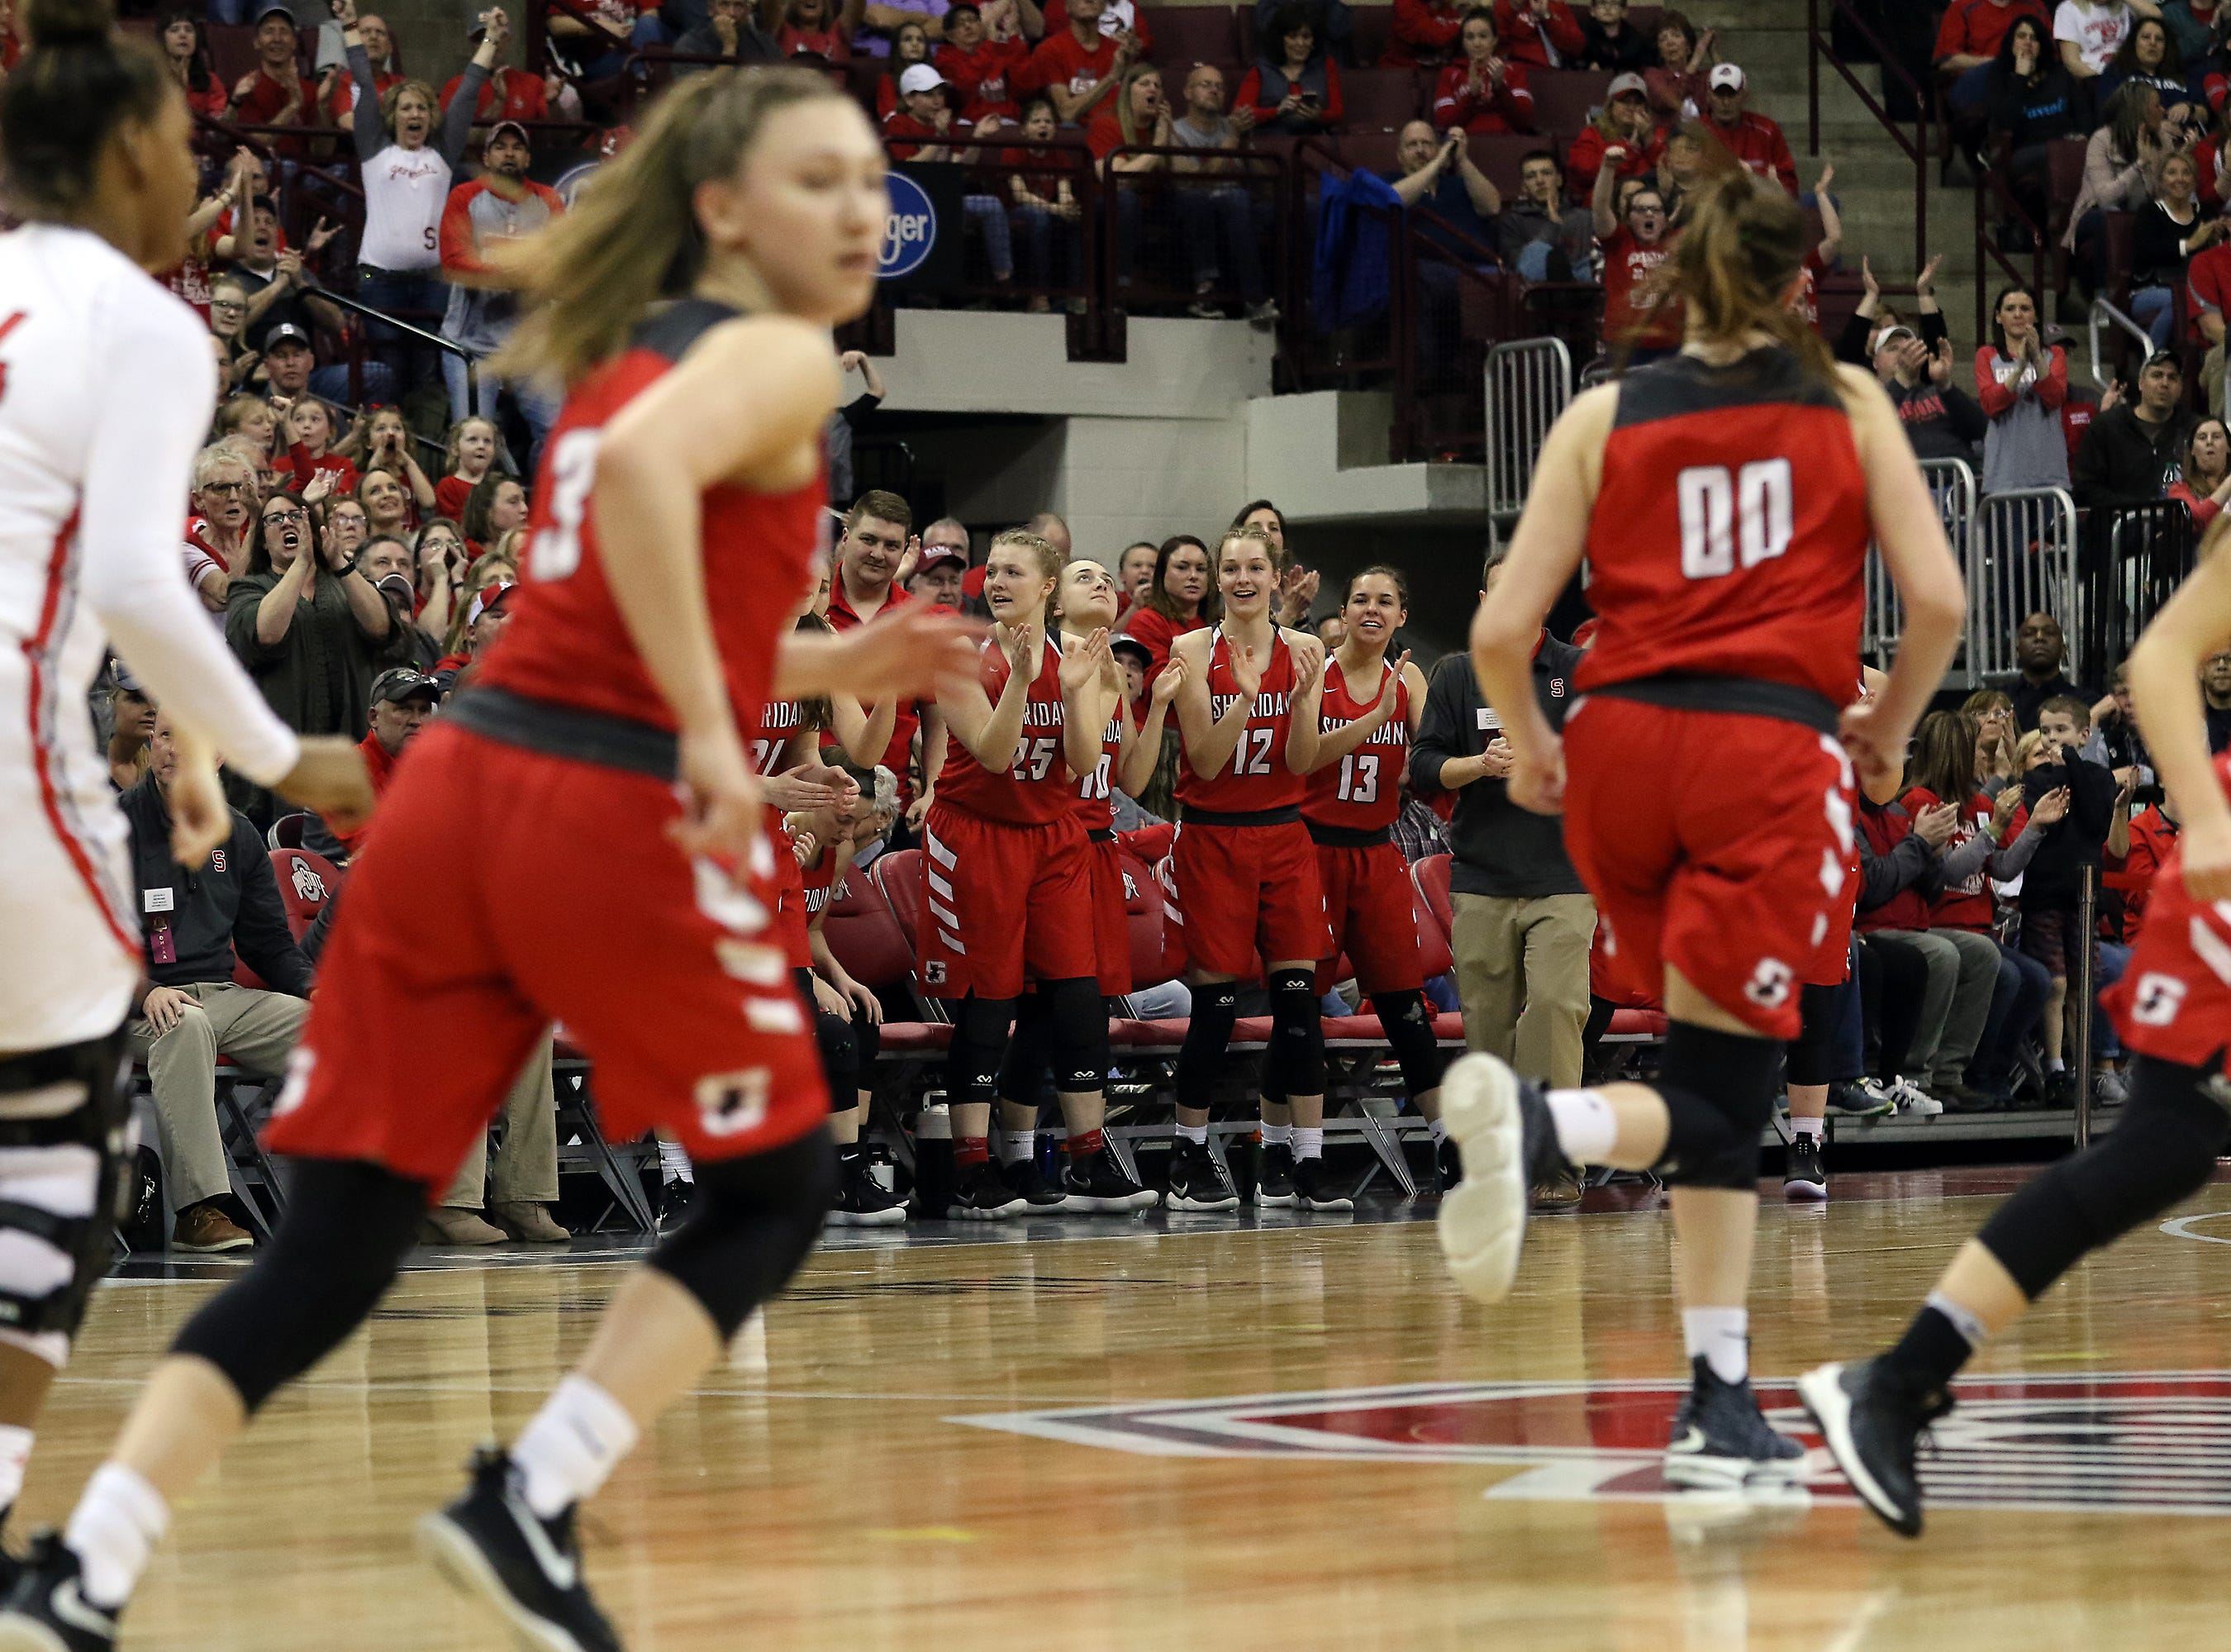 Sheridan celebrates a play against Toledo Rogers during the DII state semis in Columbus on Thursday.